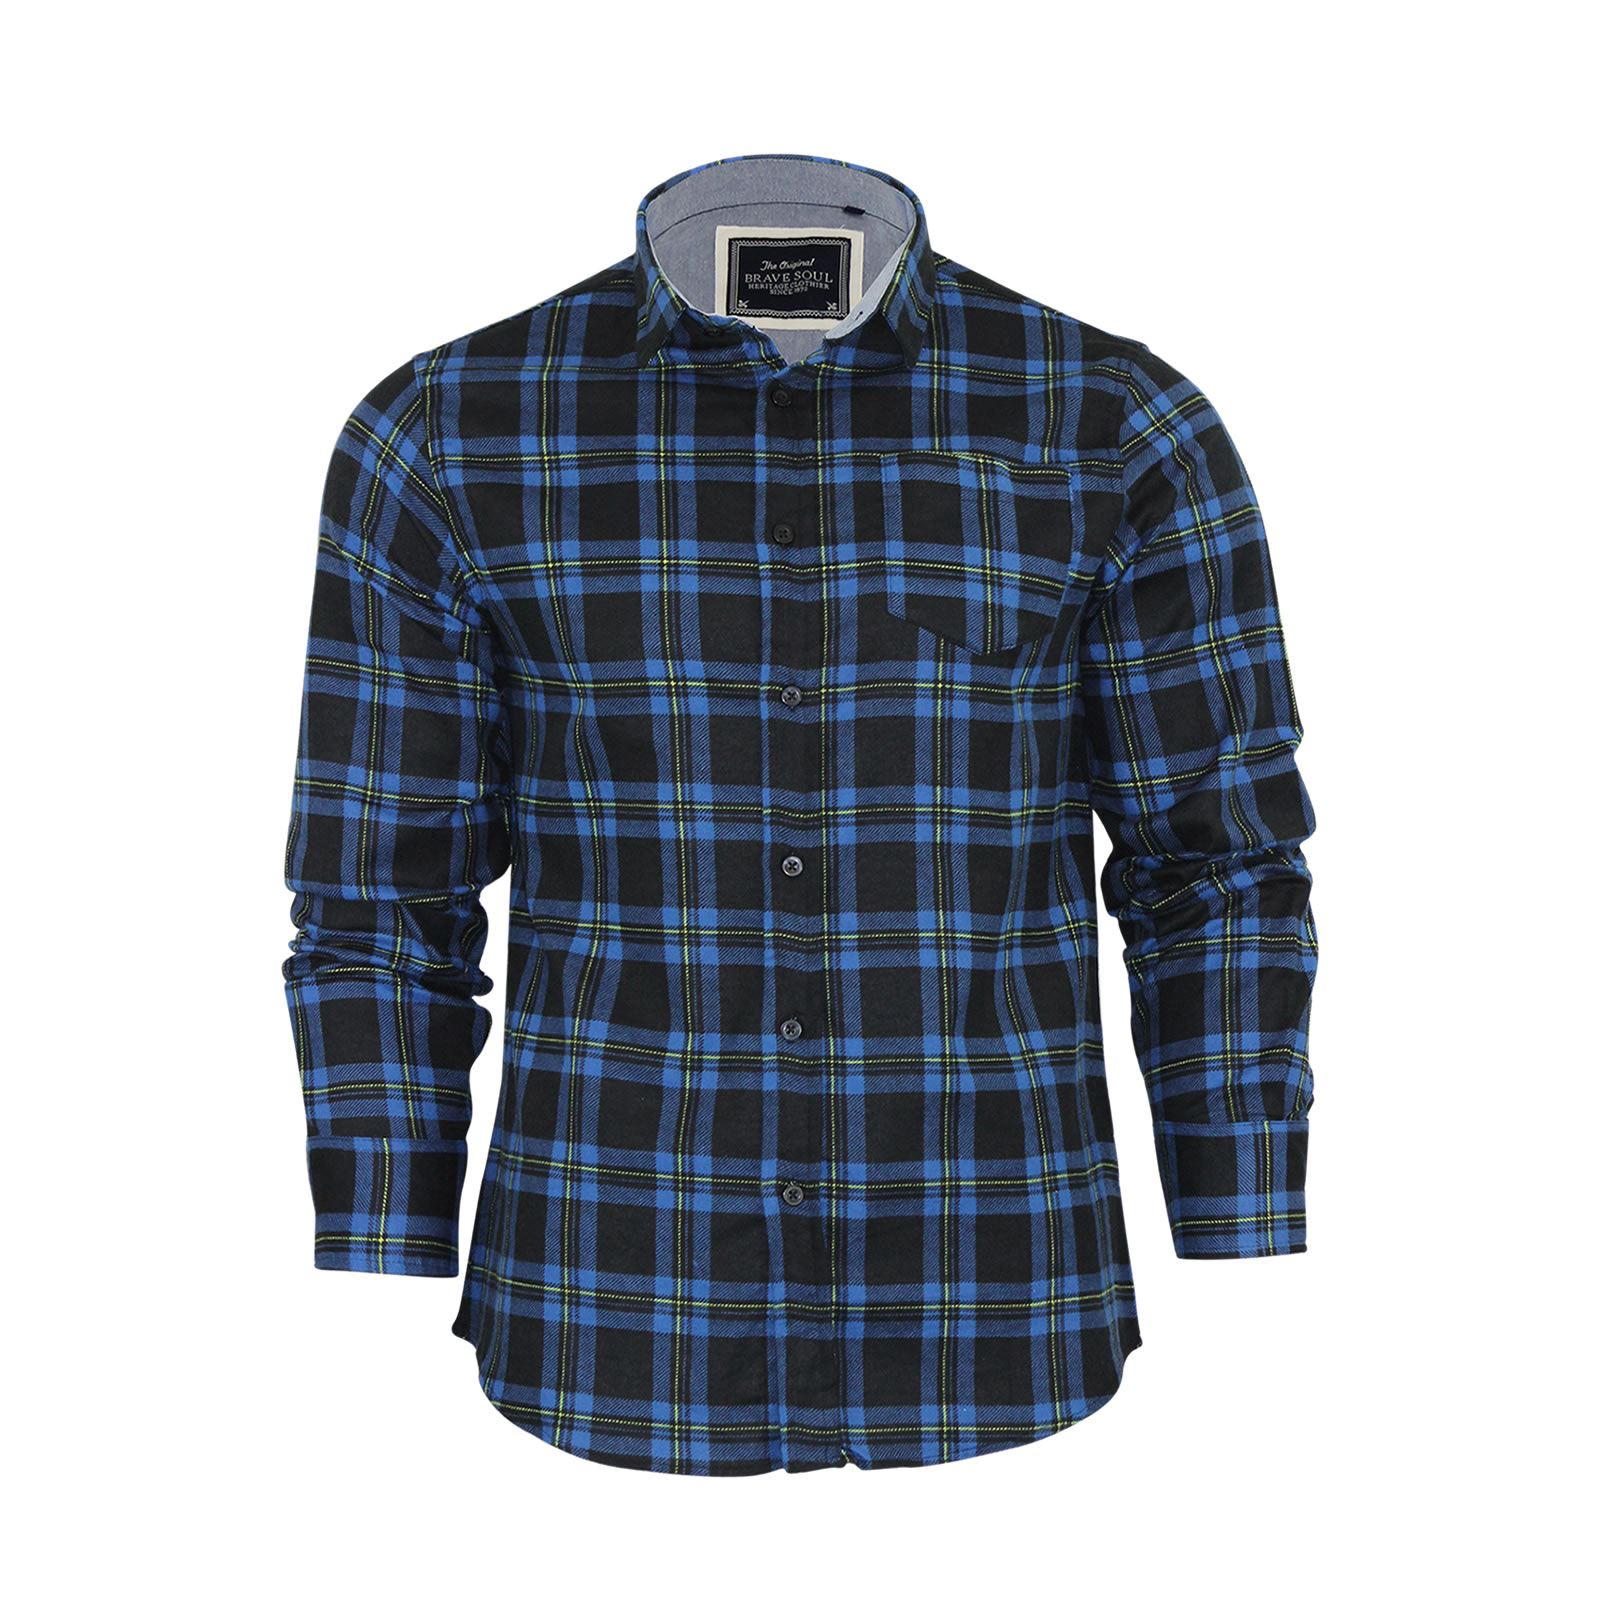 Brave-Soul-Mens-Check-Shirt-Flannel-Brushed-Cotton-Long-Sleeve-Casual-Top thumbnail 18